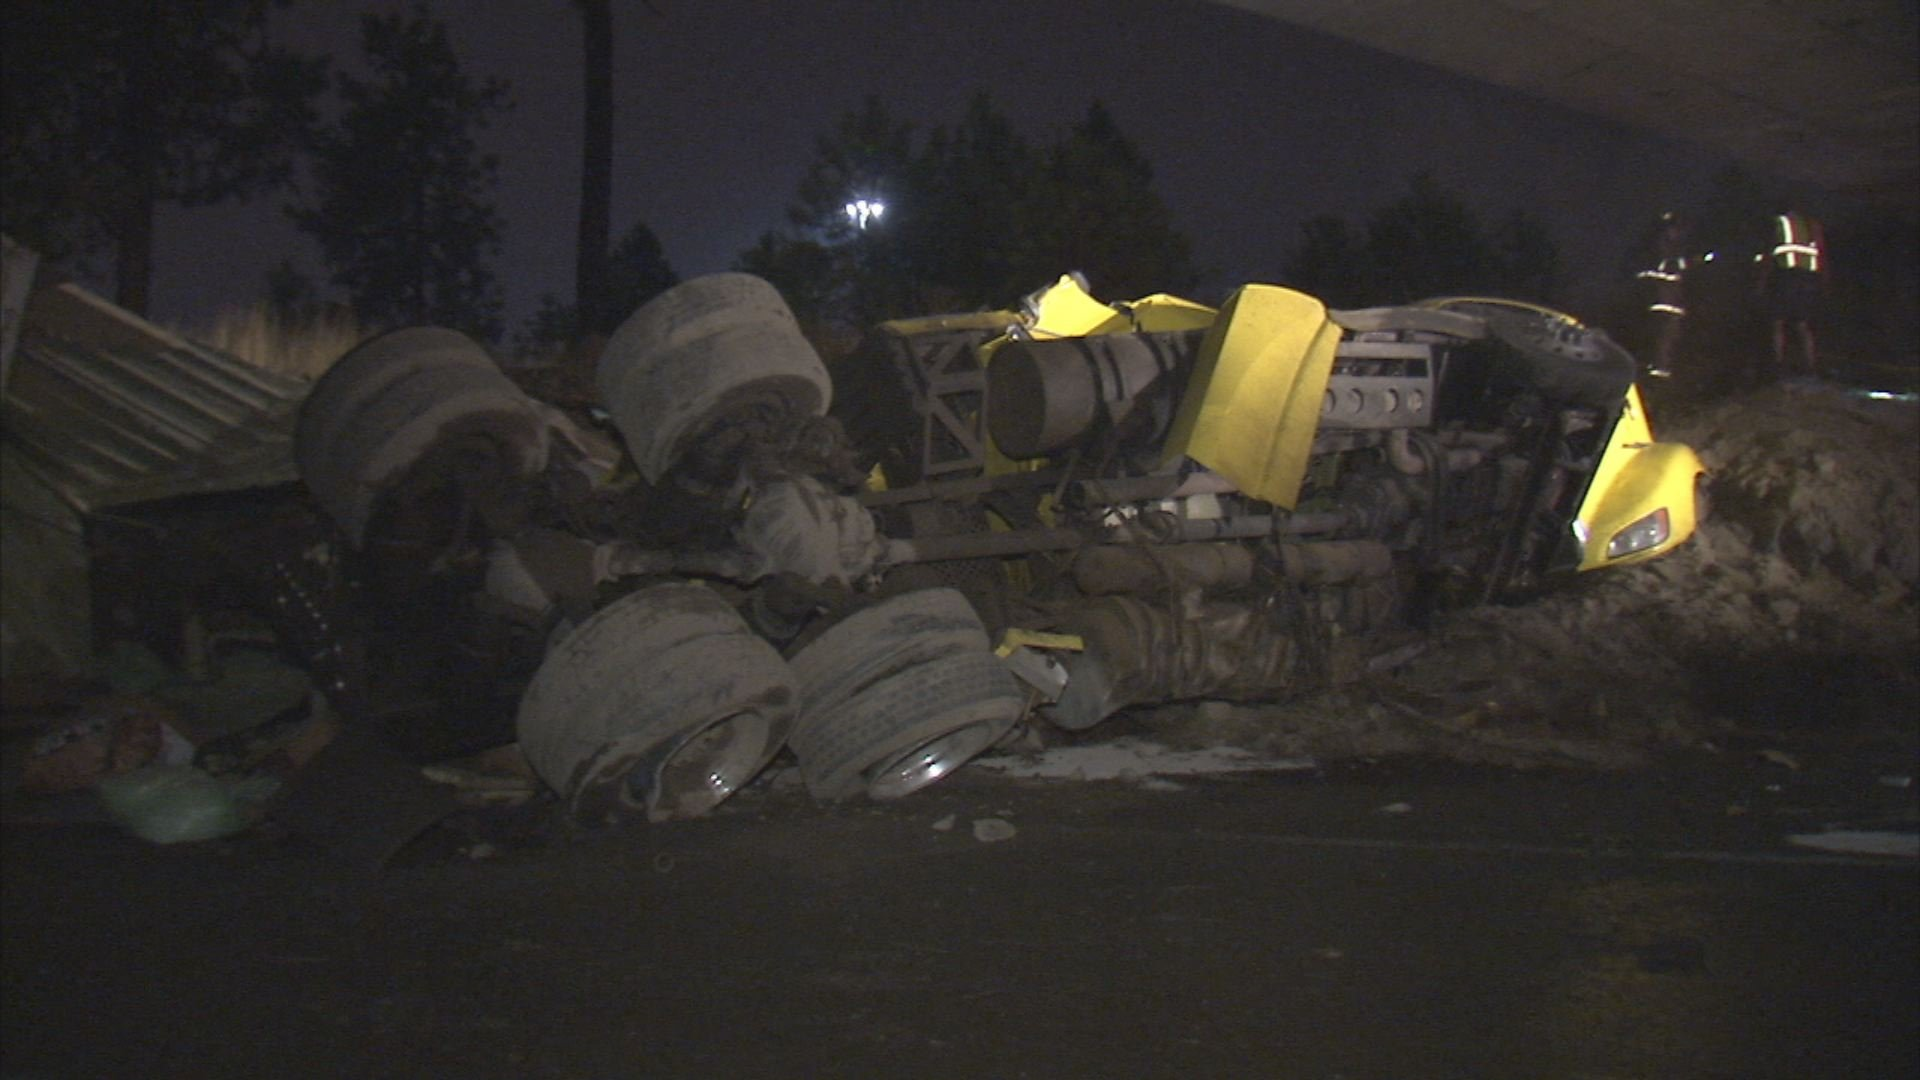 The driver of this semi-truck was not injured in this rollover crash